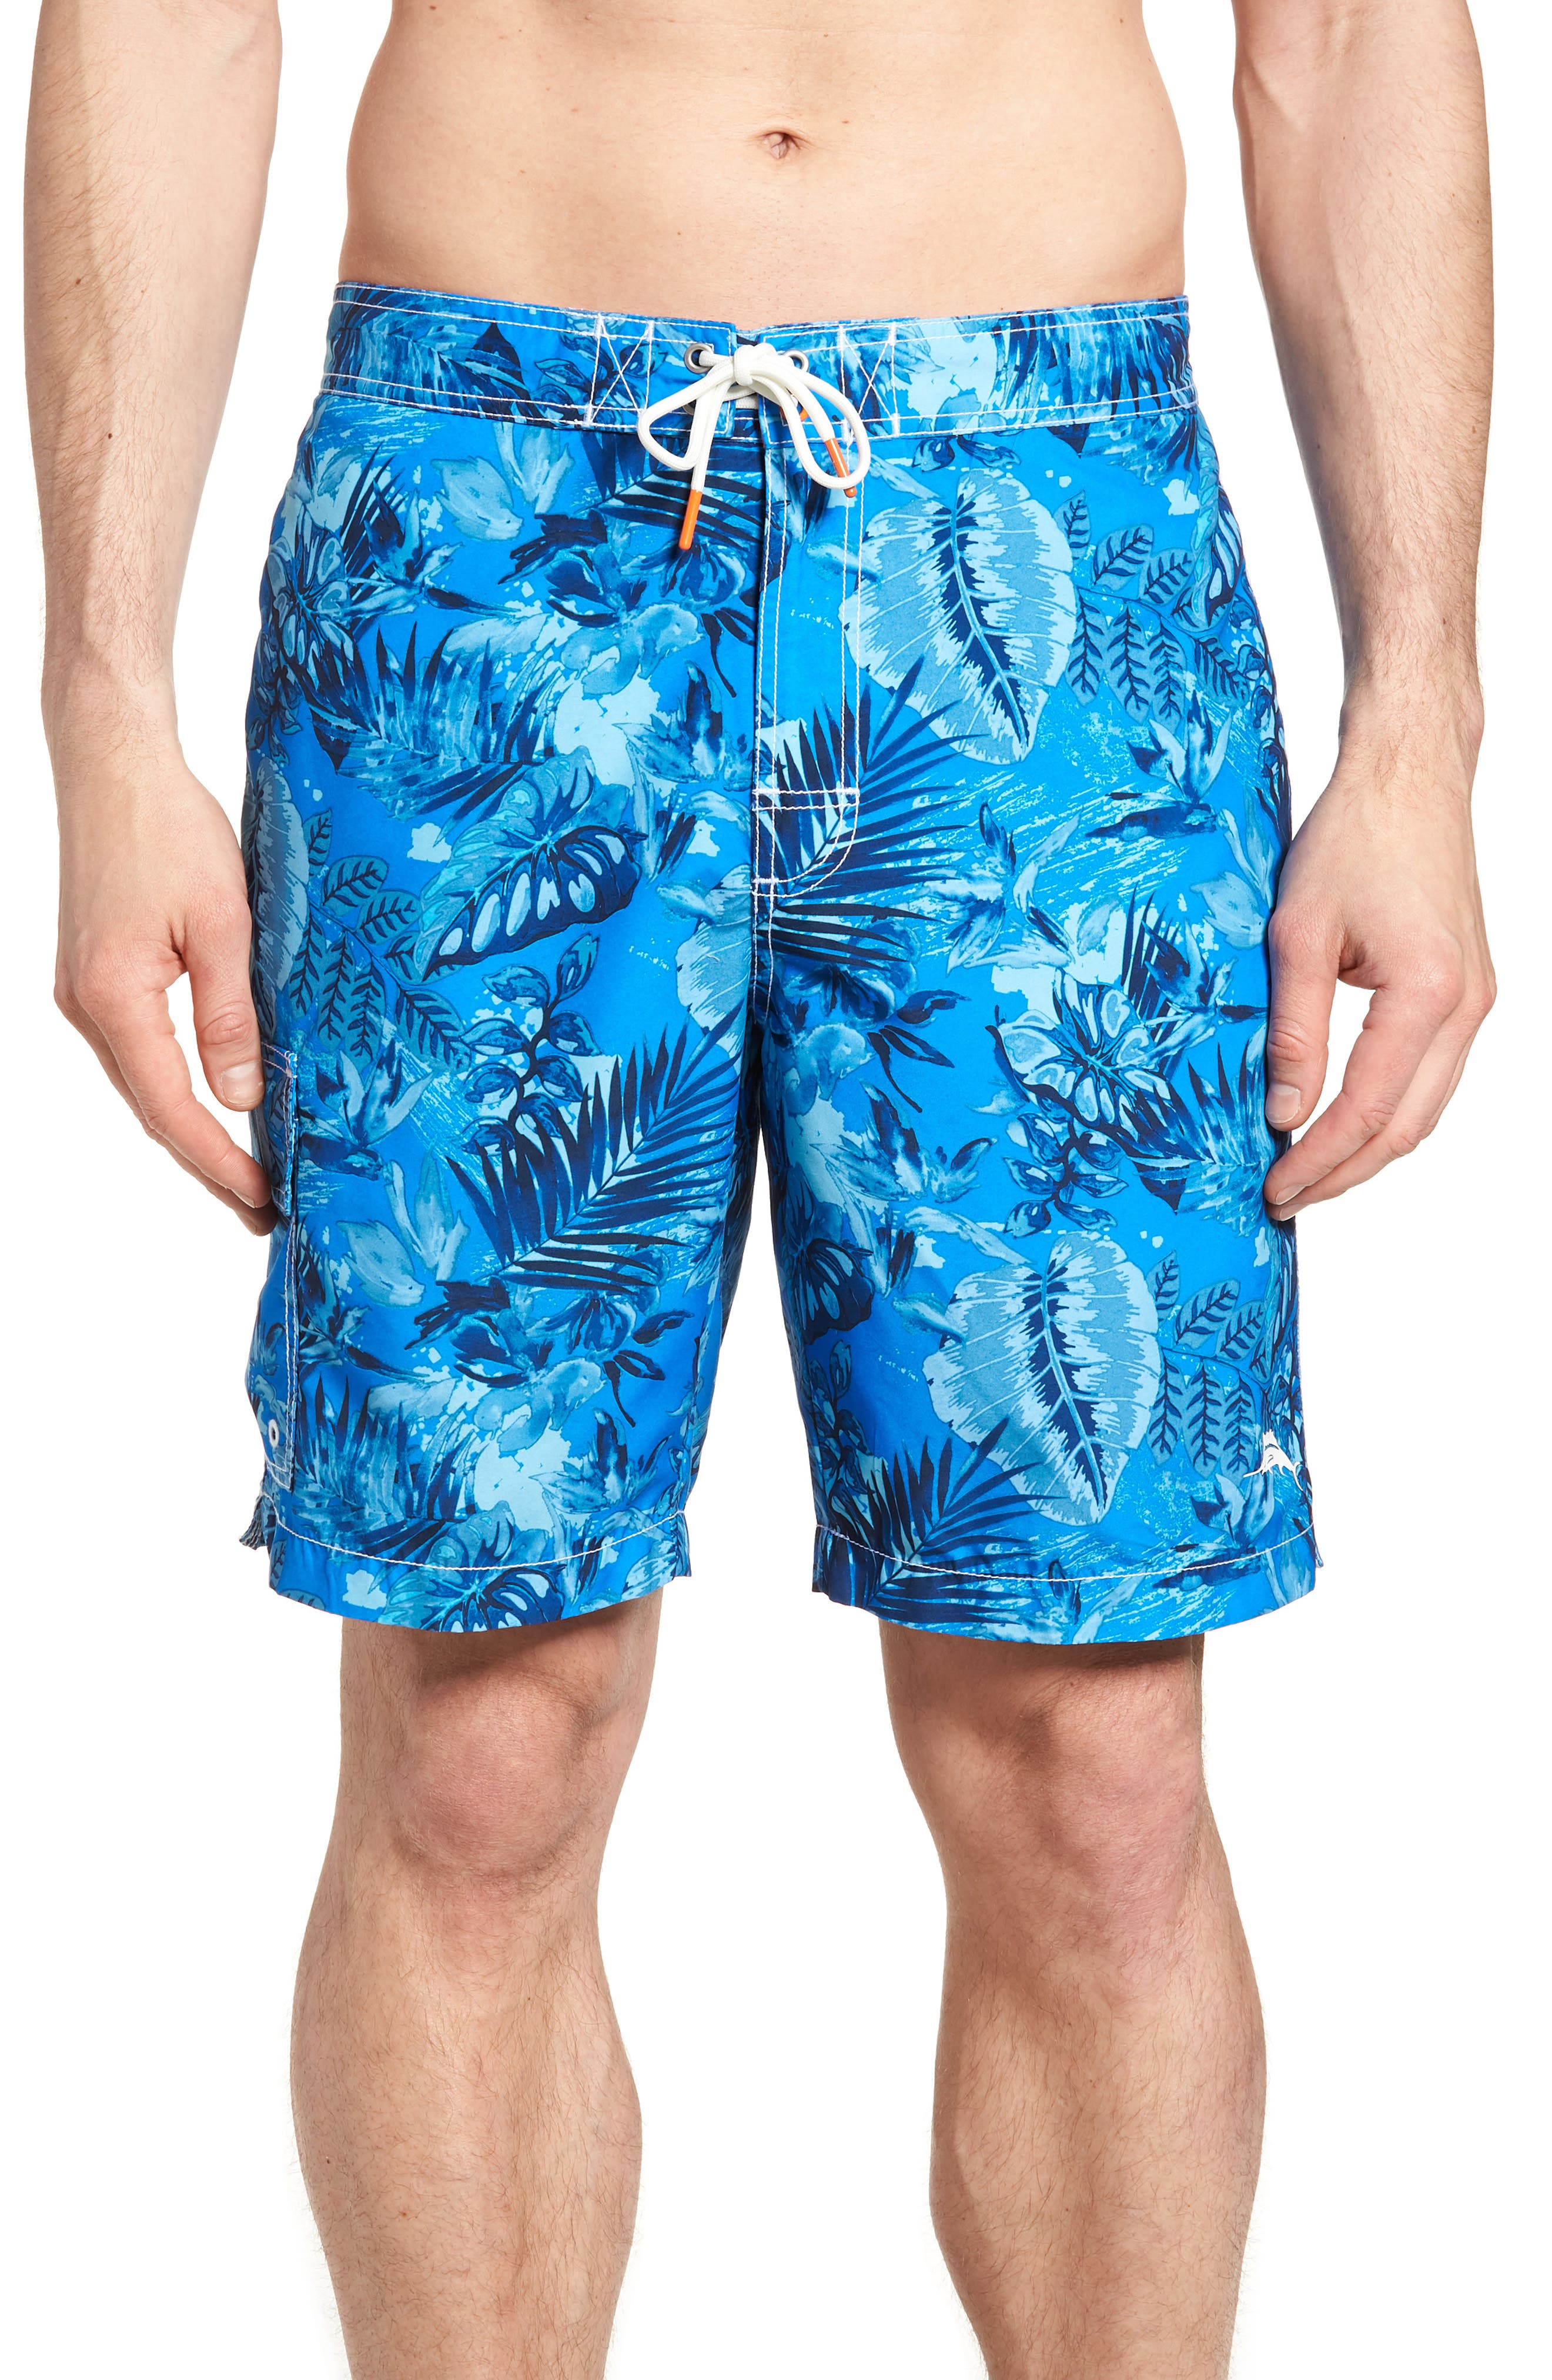 Baja Selva Shores Board Shorts,                             Main thumbnail 1, color,                             Blue Spark